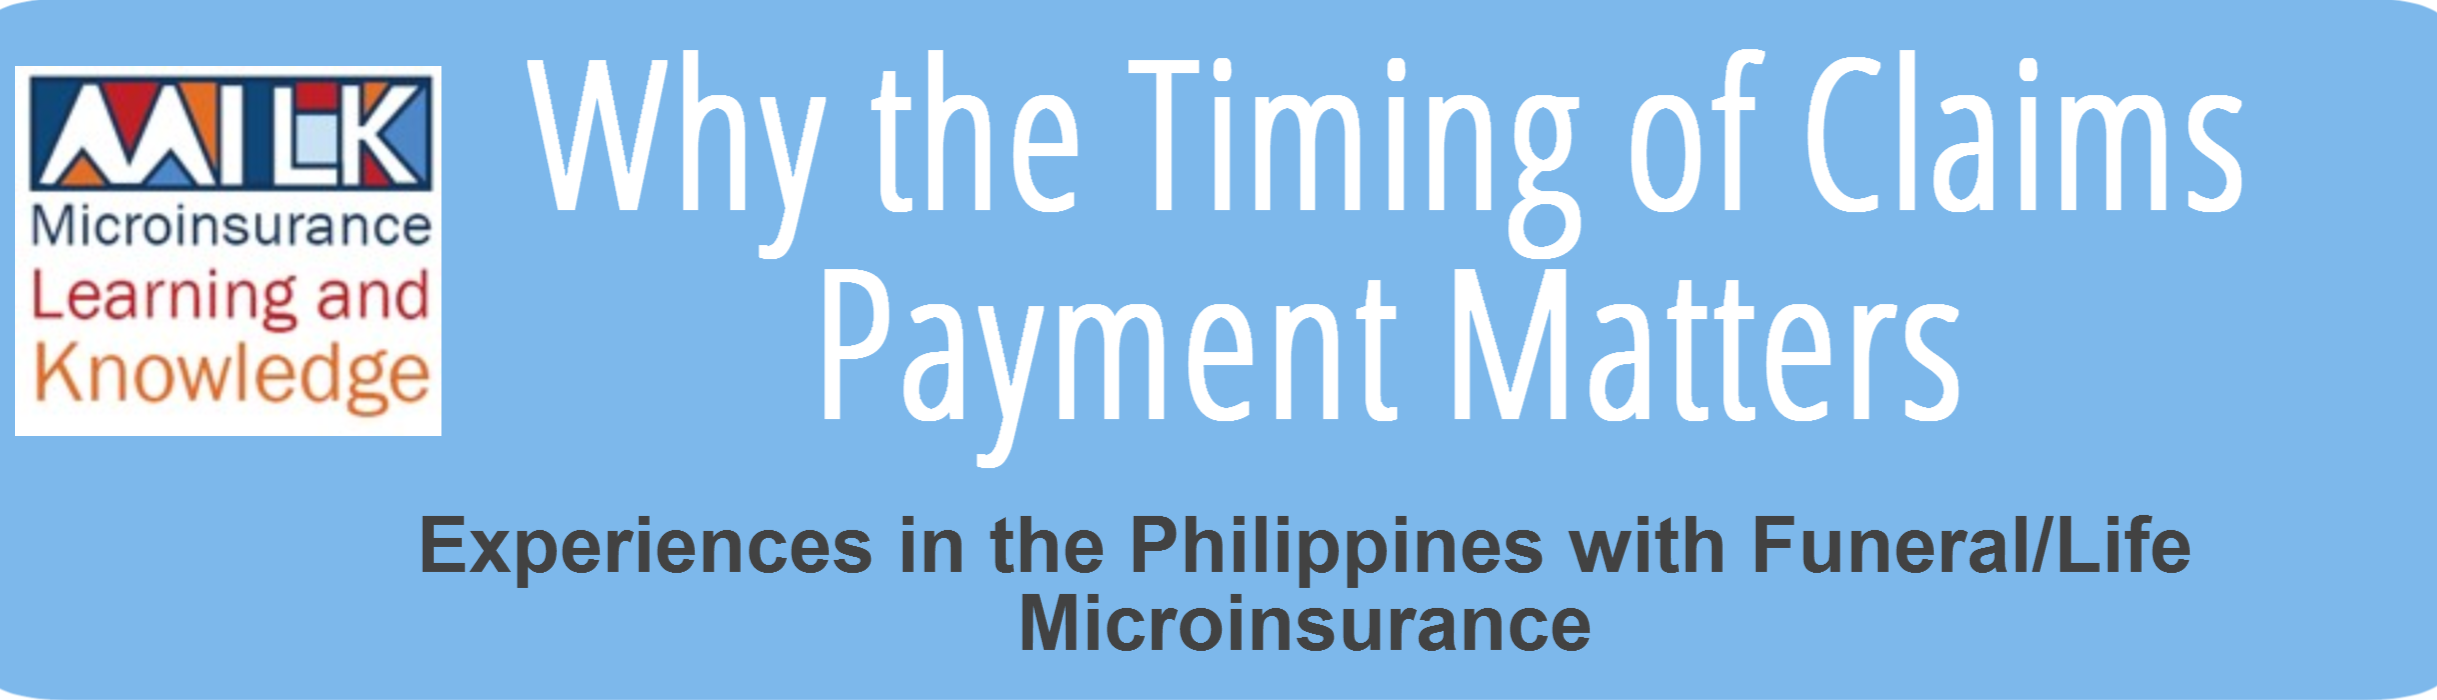 Infographic - Why timing of claims payment matters